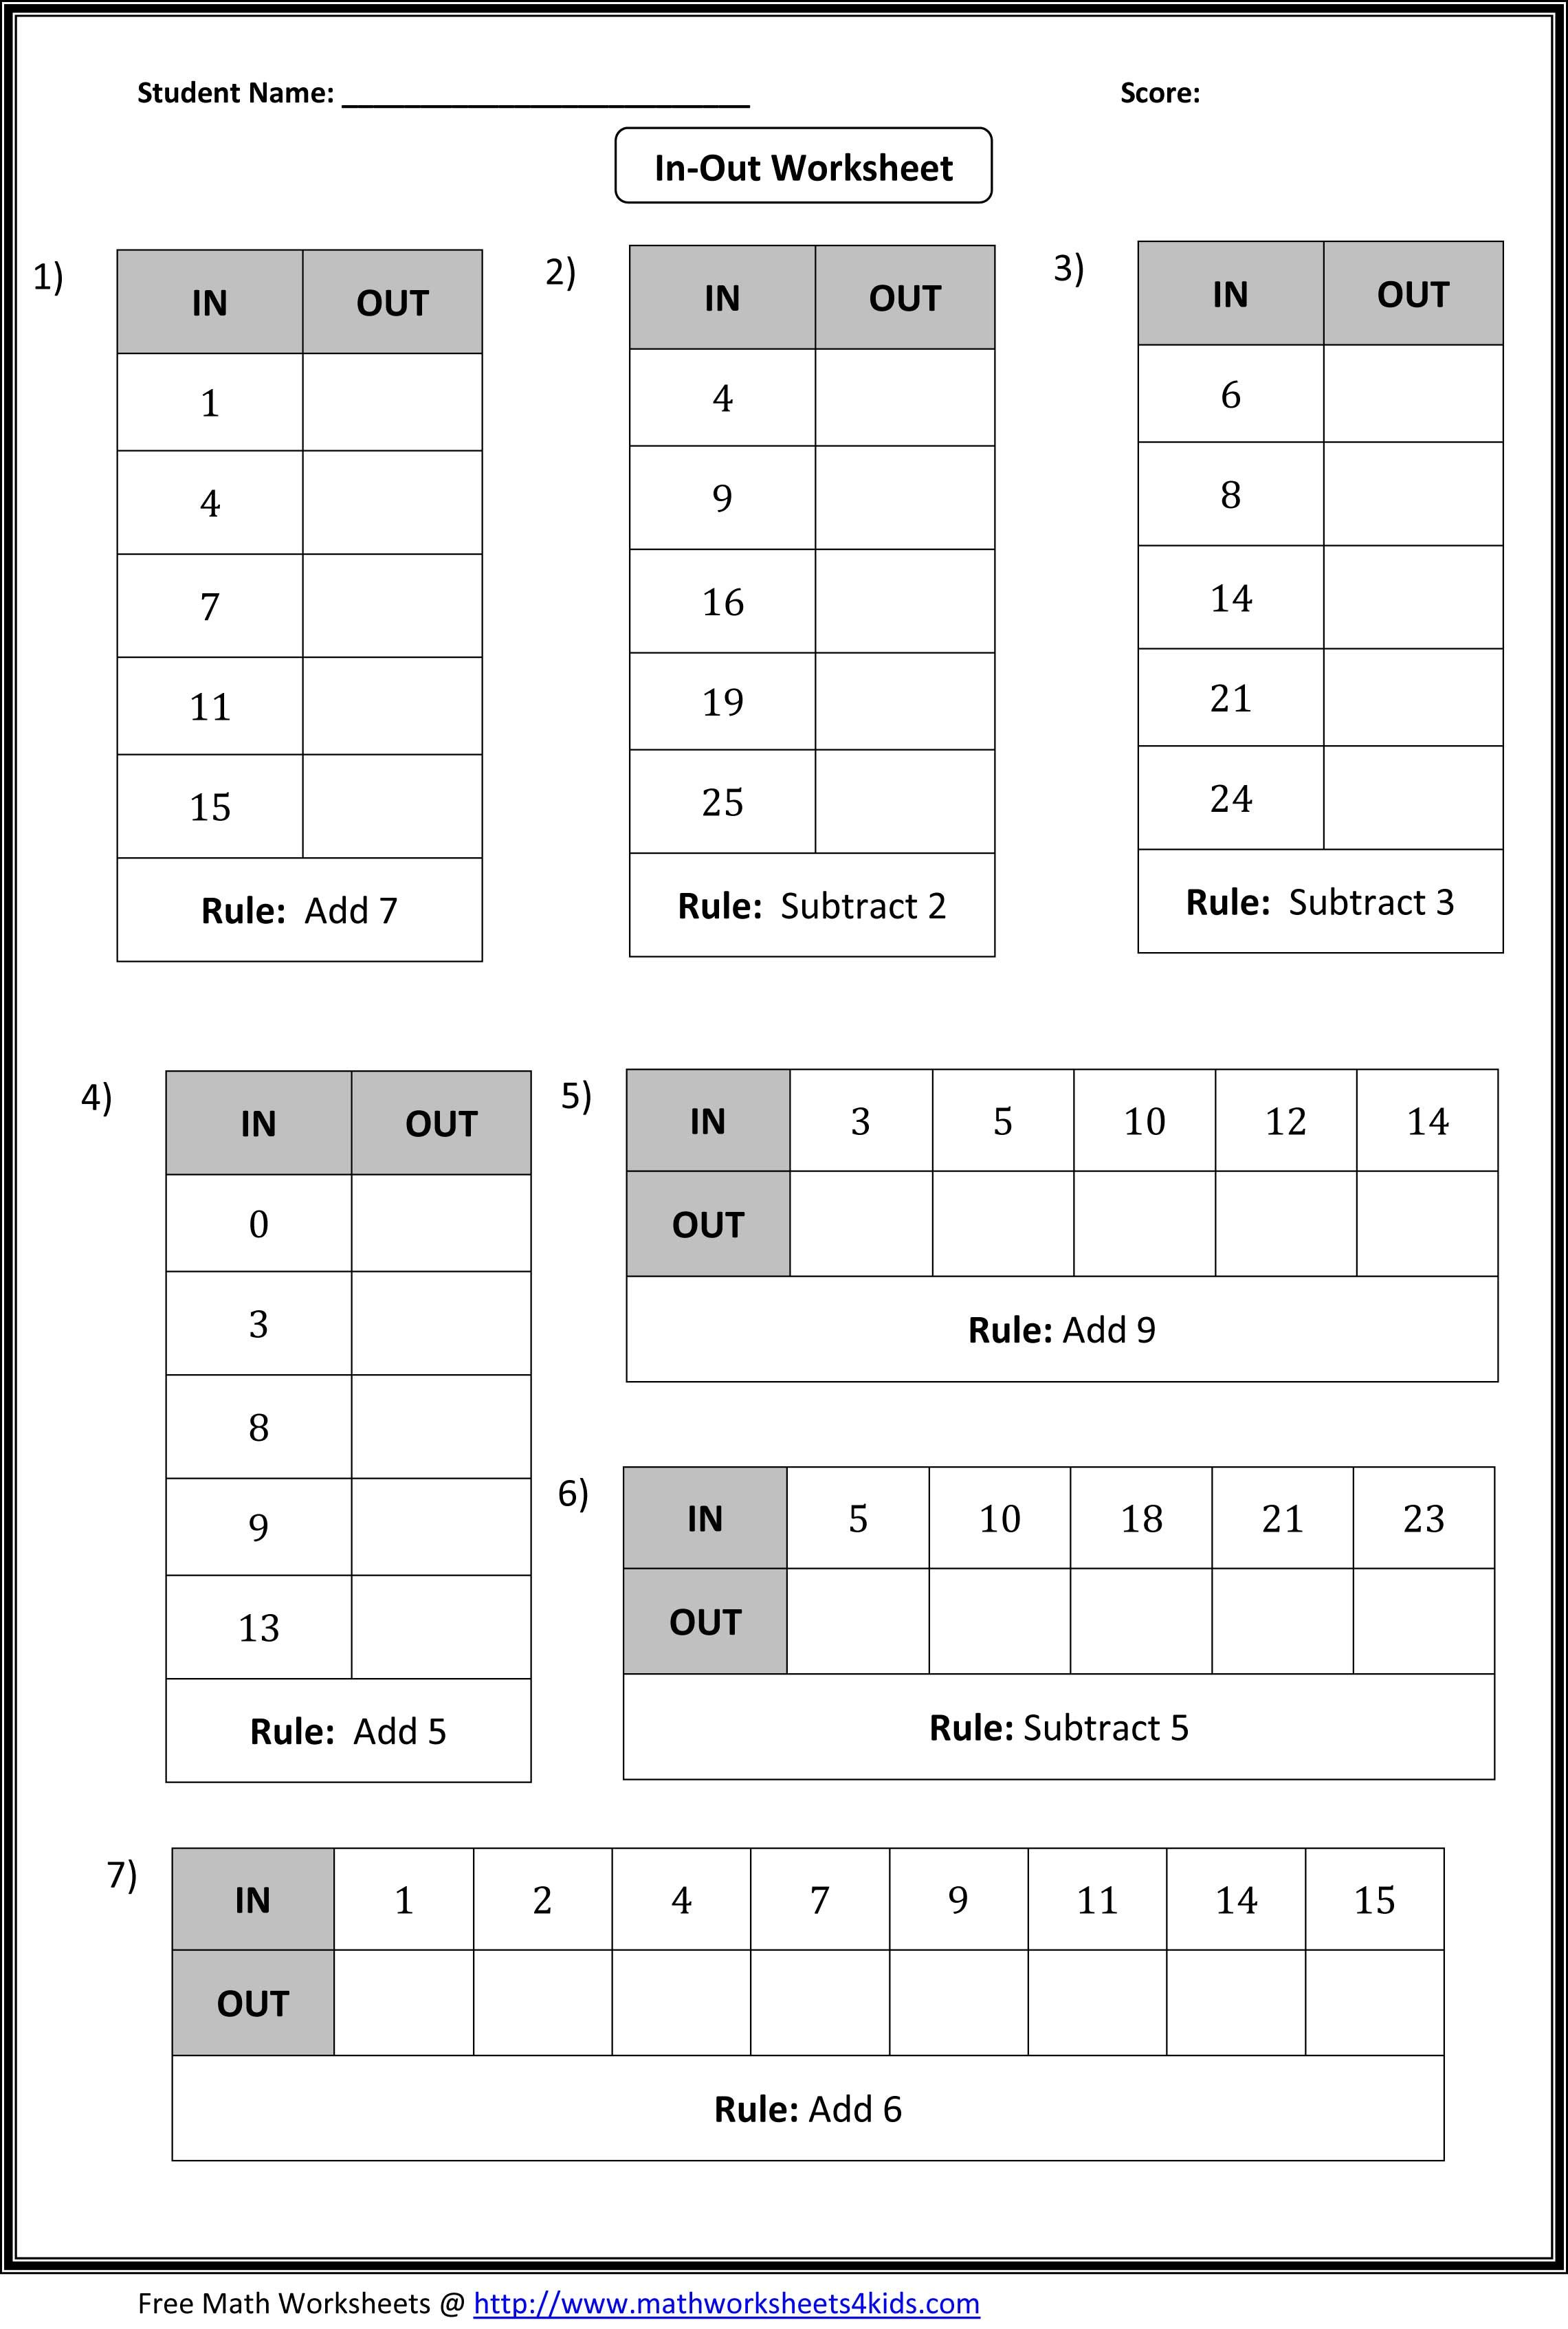 Worksheets Addition Subtraction And Multiplication Worksheets in out boxes worksheets include addition subtraction and worksheets